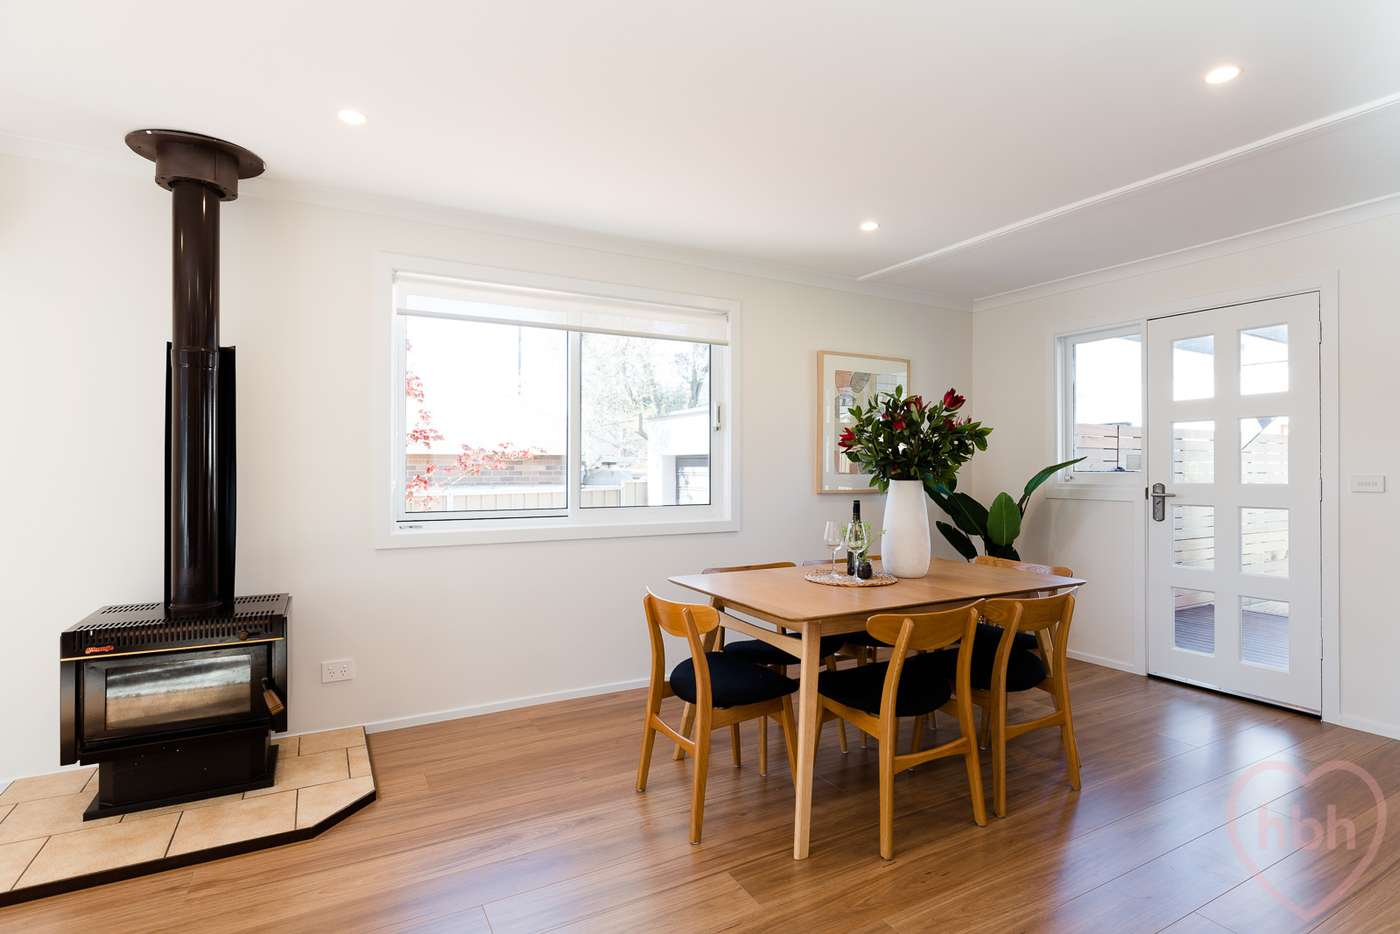 Sixth view of Homely house listing, 128 MacKenzie Street, Hackett ACT 2602